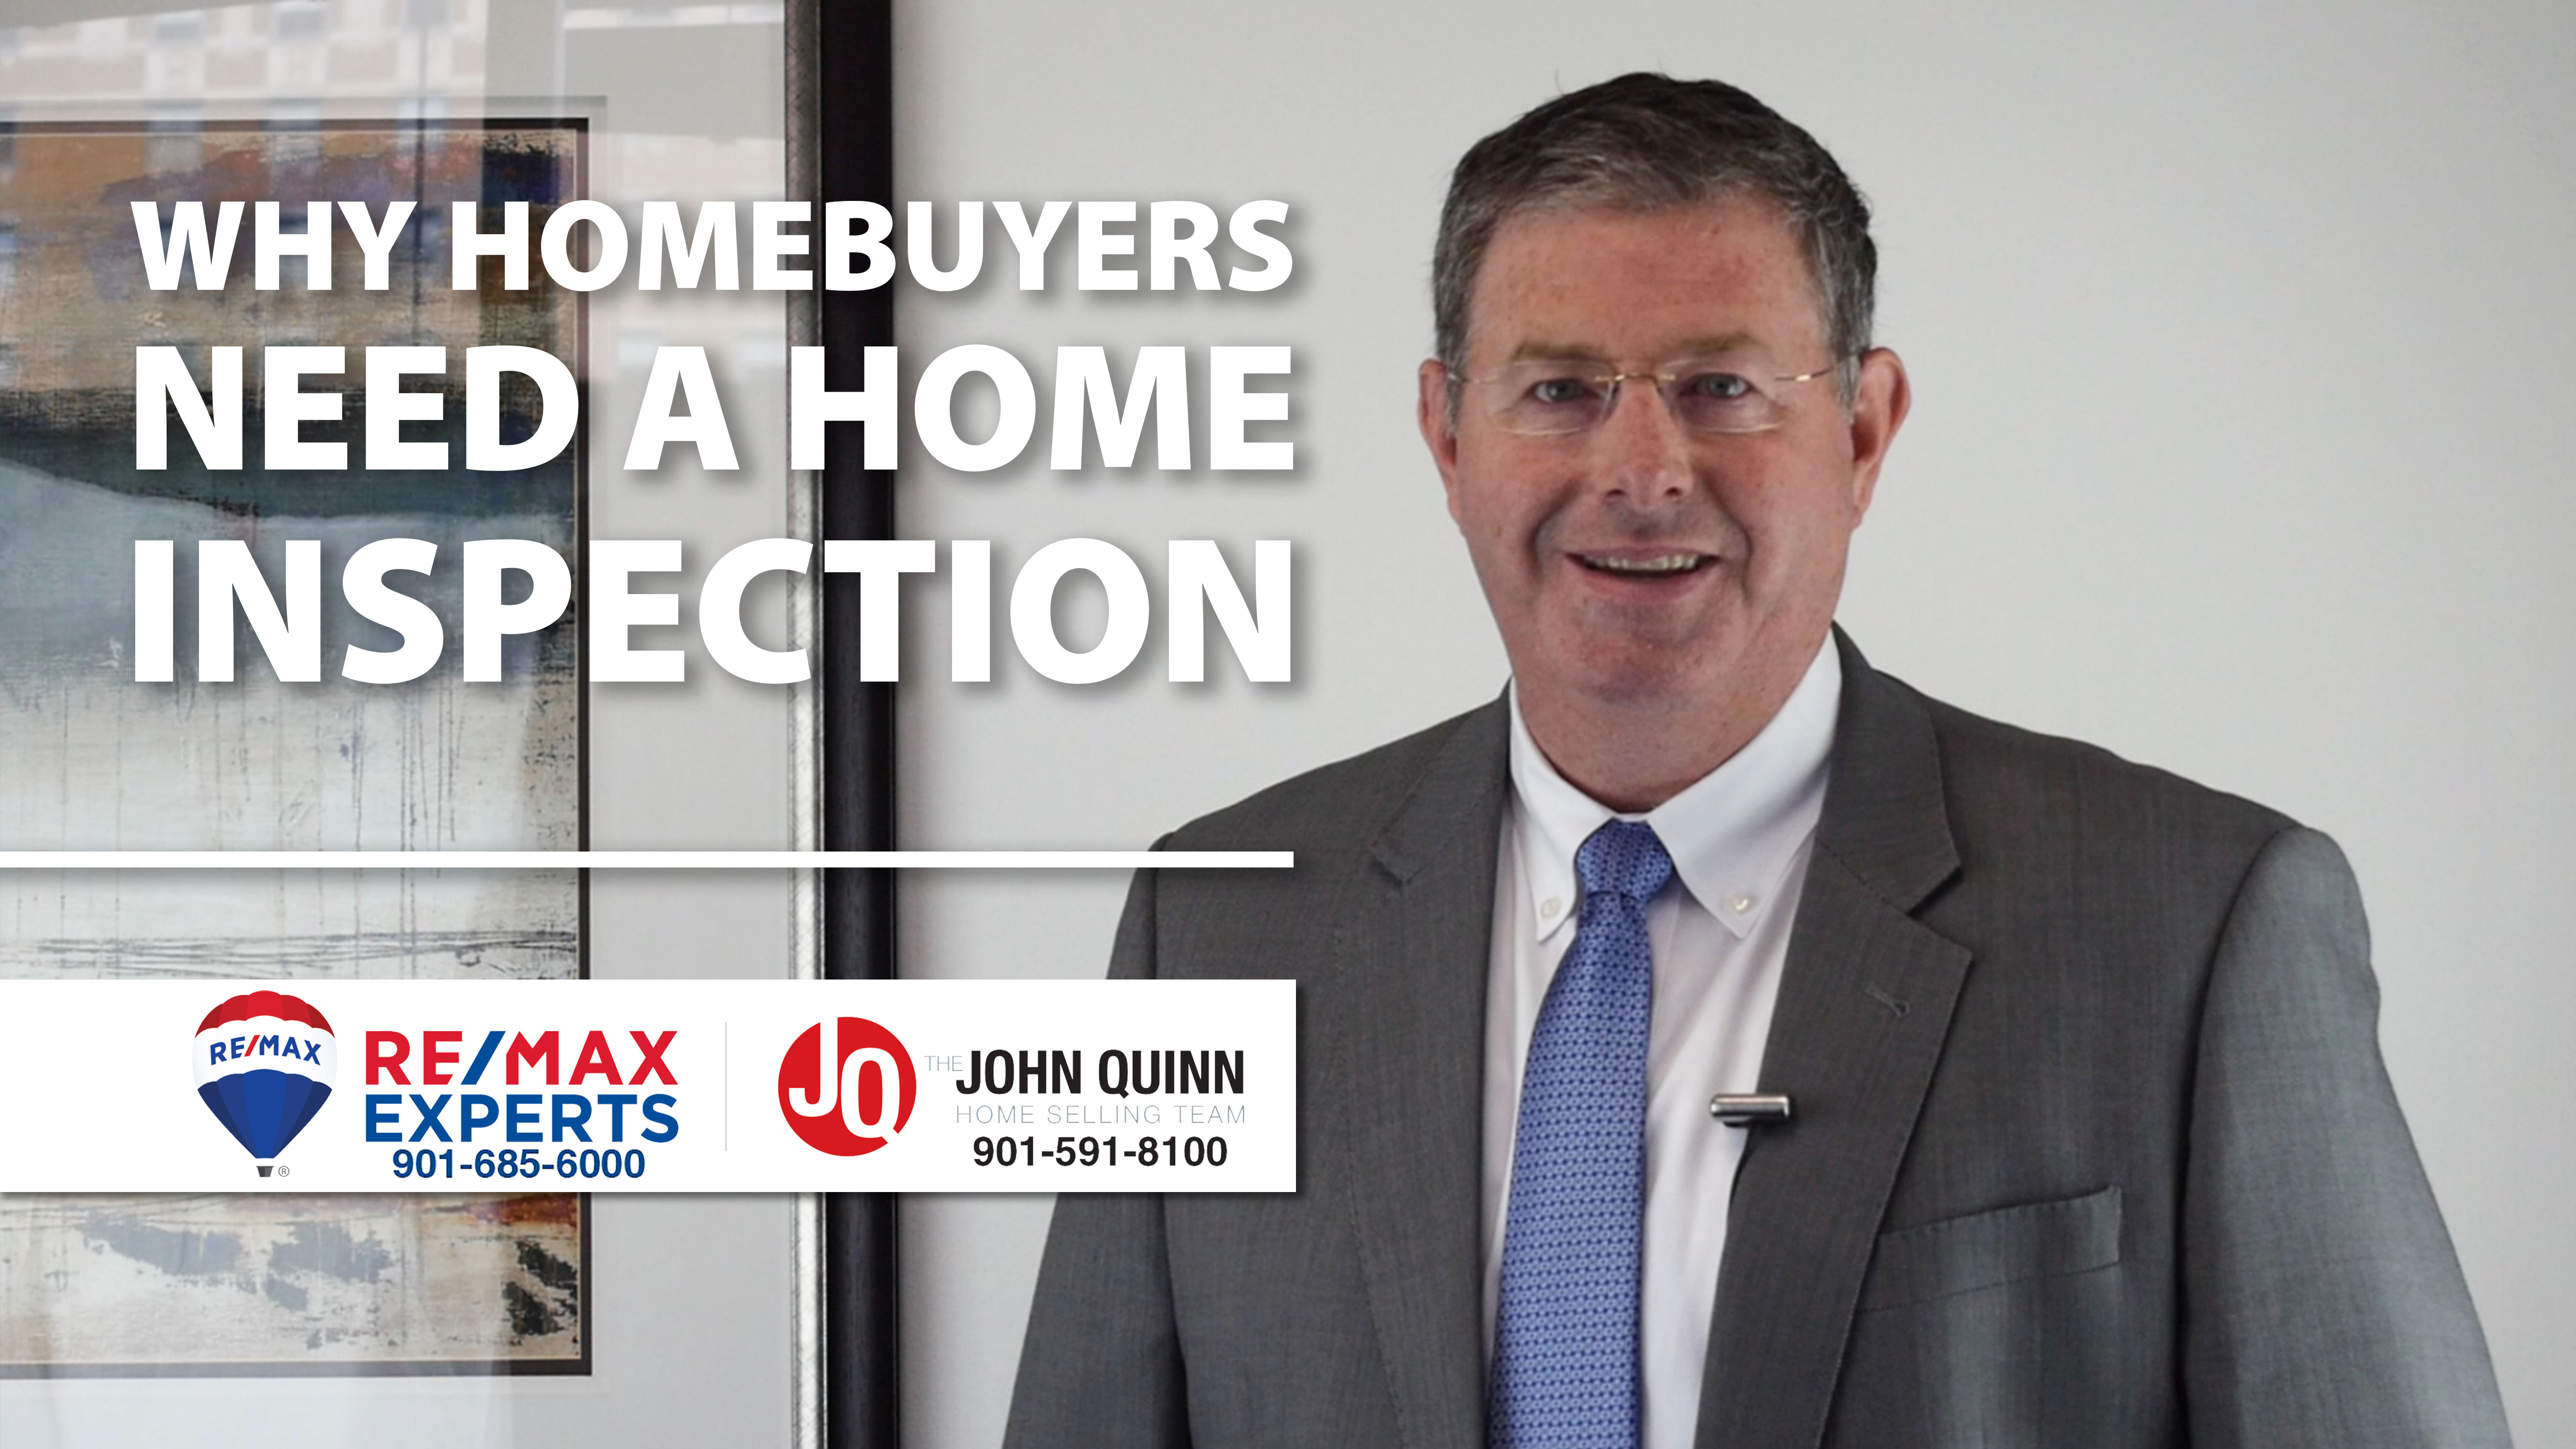 Are Home Inspections Necessary for Homebuyers?